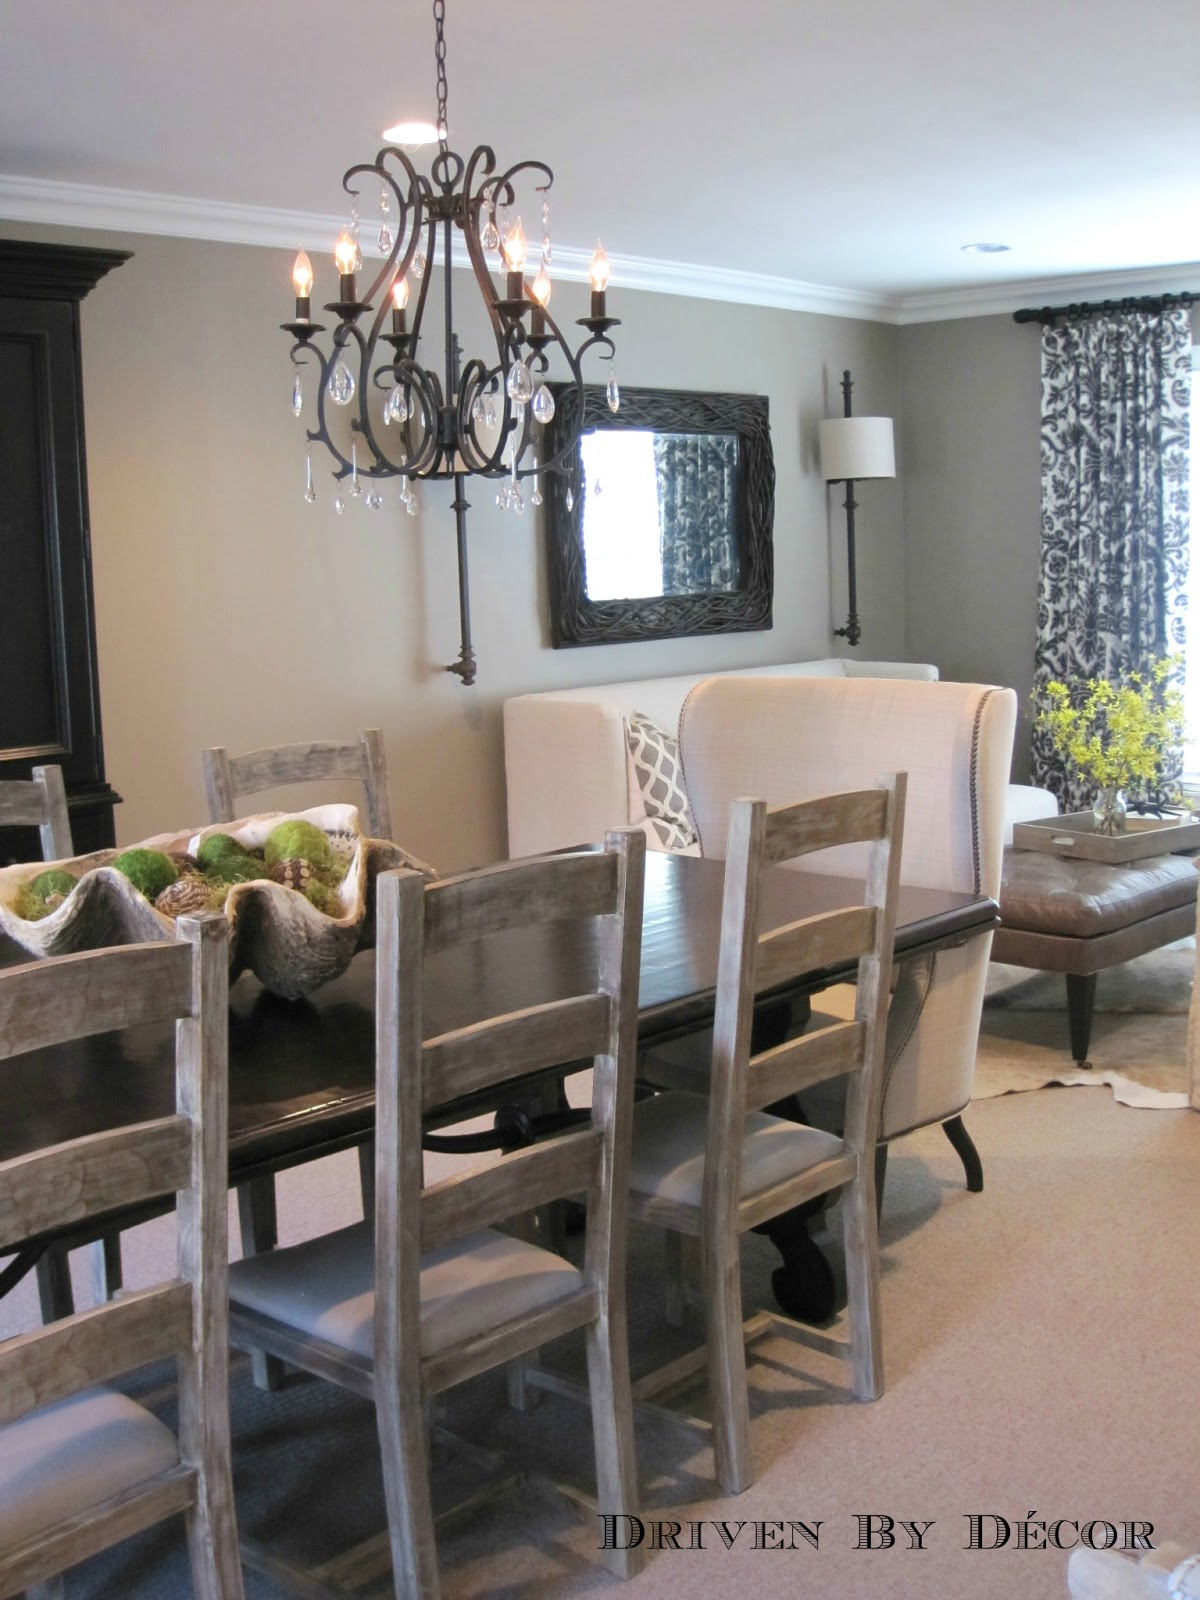 Dining Room Design Ideas: Mixed Seating   Driven by Decor